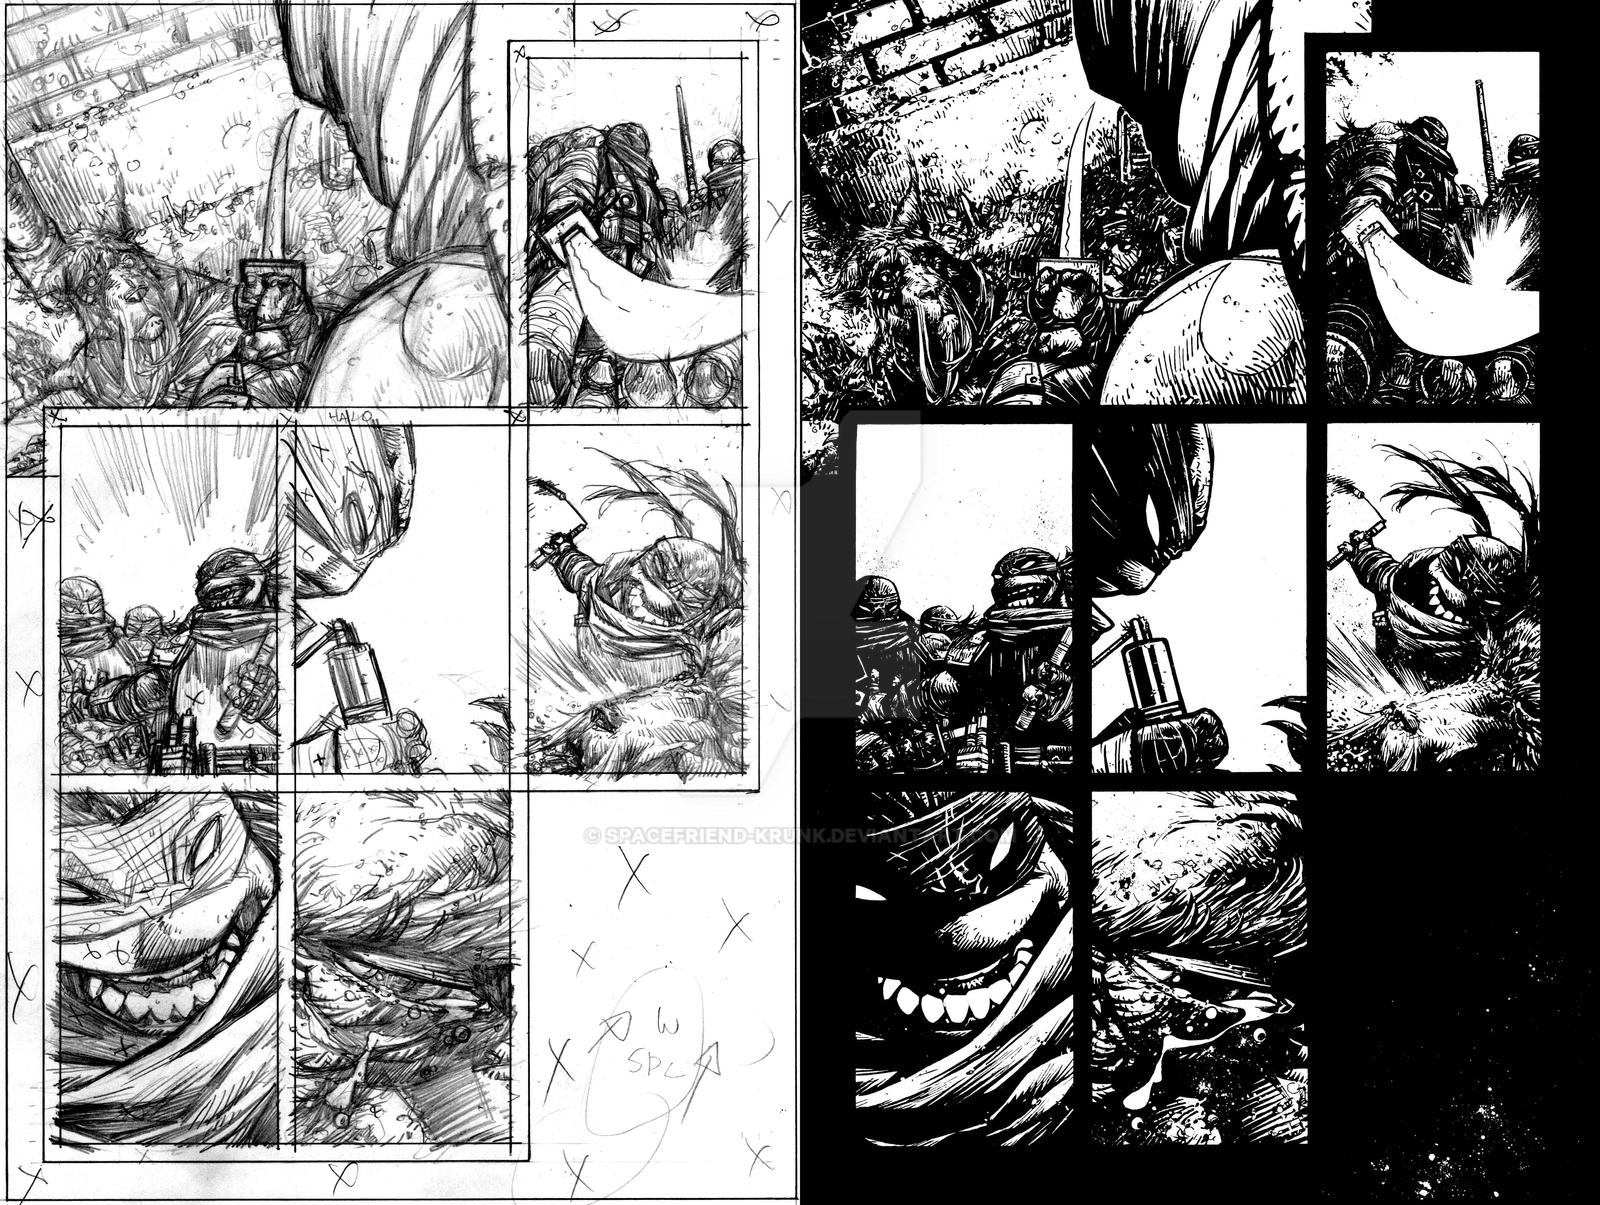 TMNT page 8 Pencils and Inks